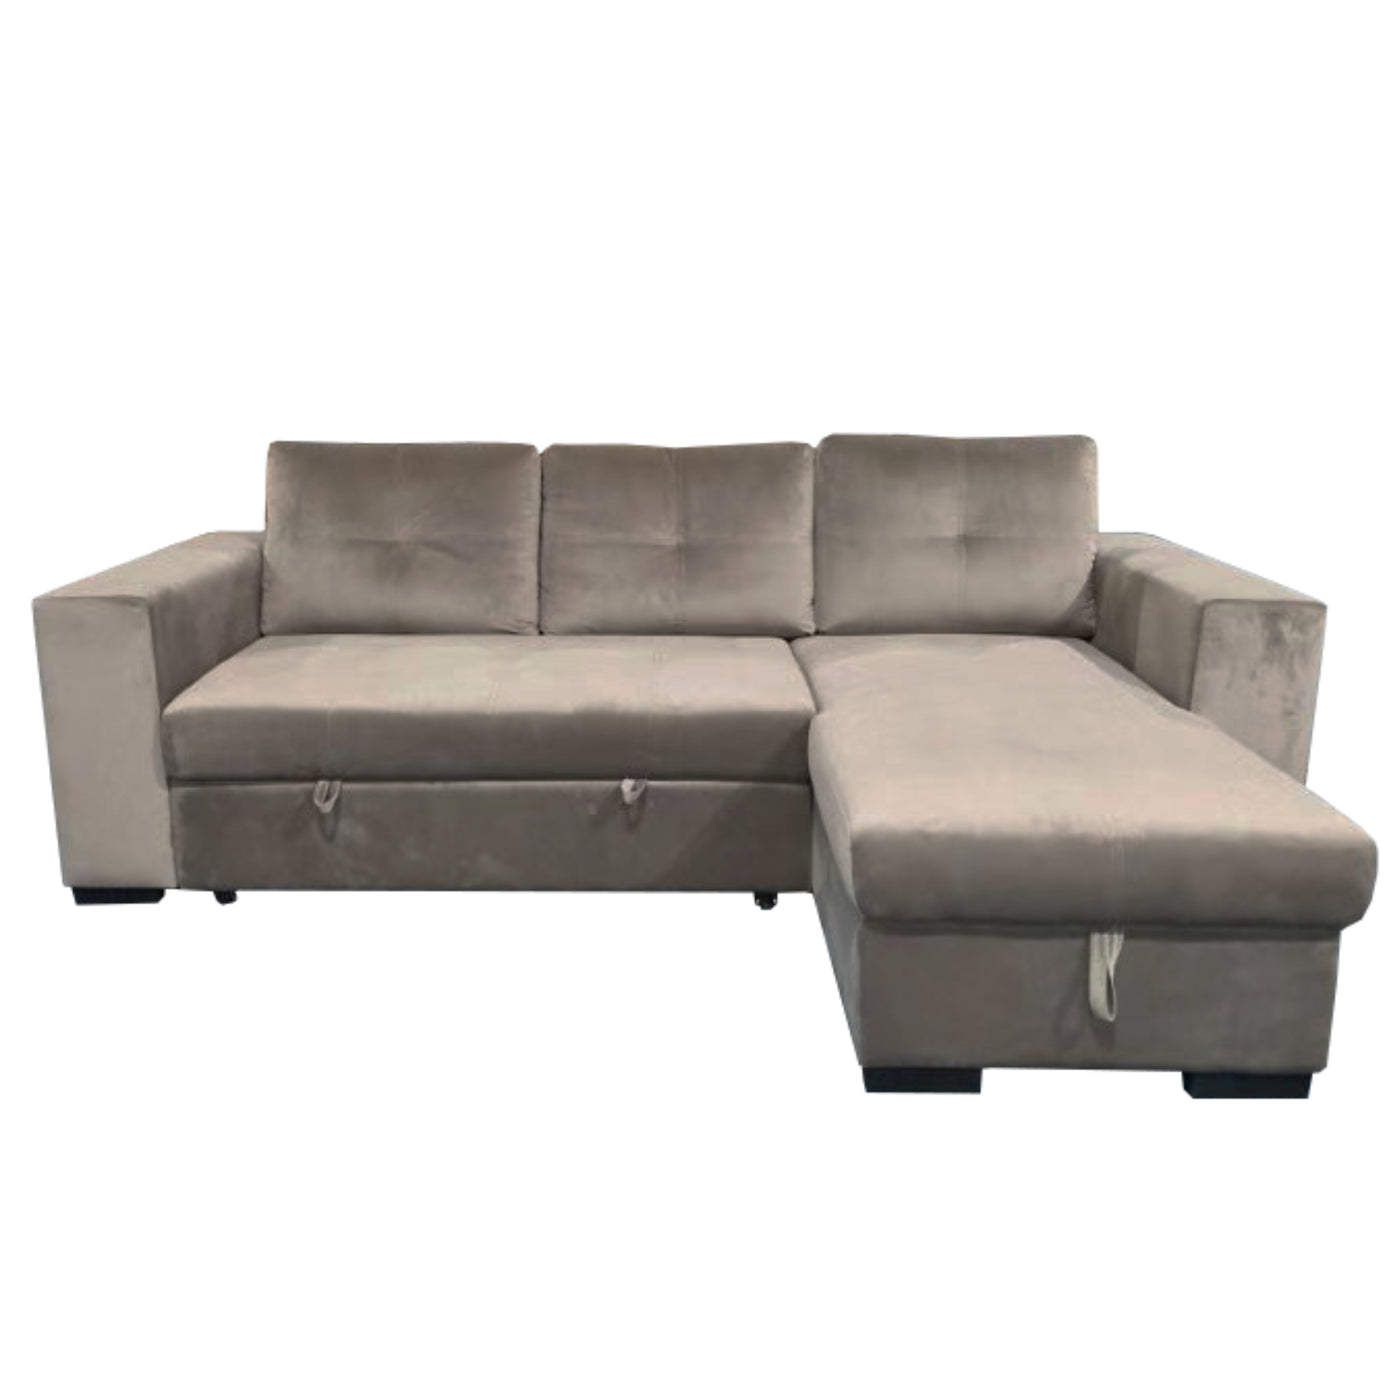 6111 Pull Out Sofa Bed With Storage Ultra Plush Fabric